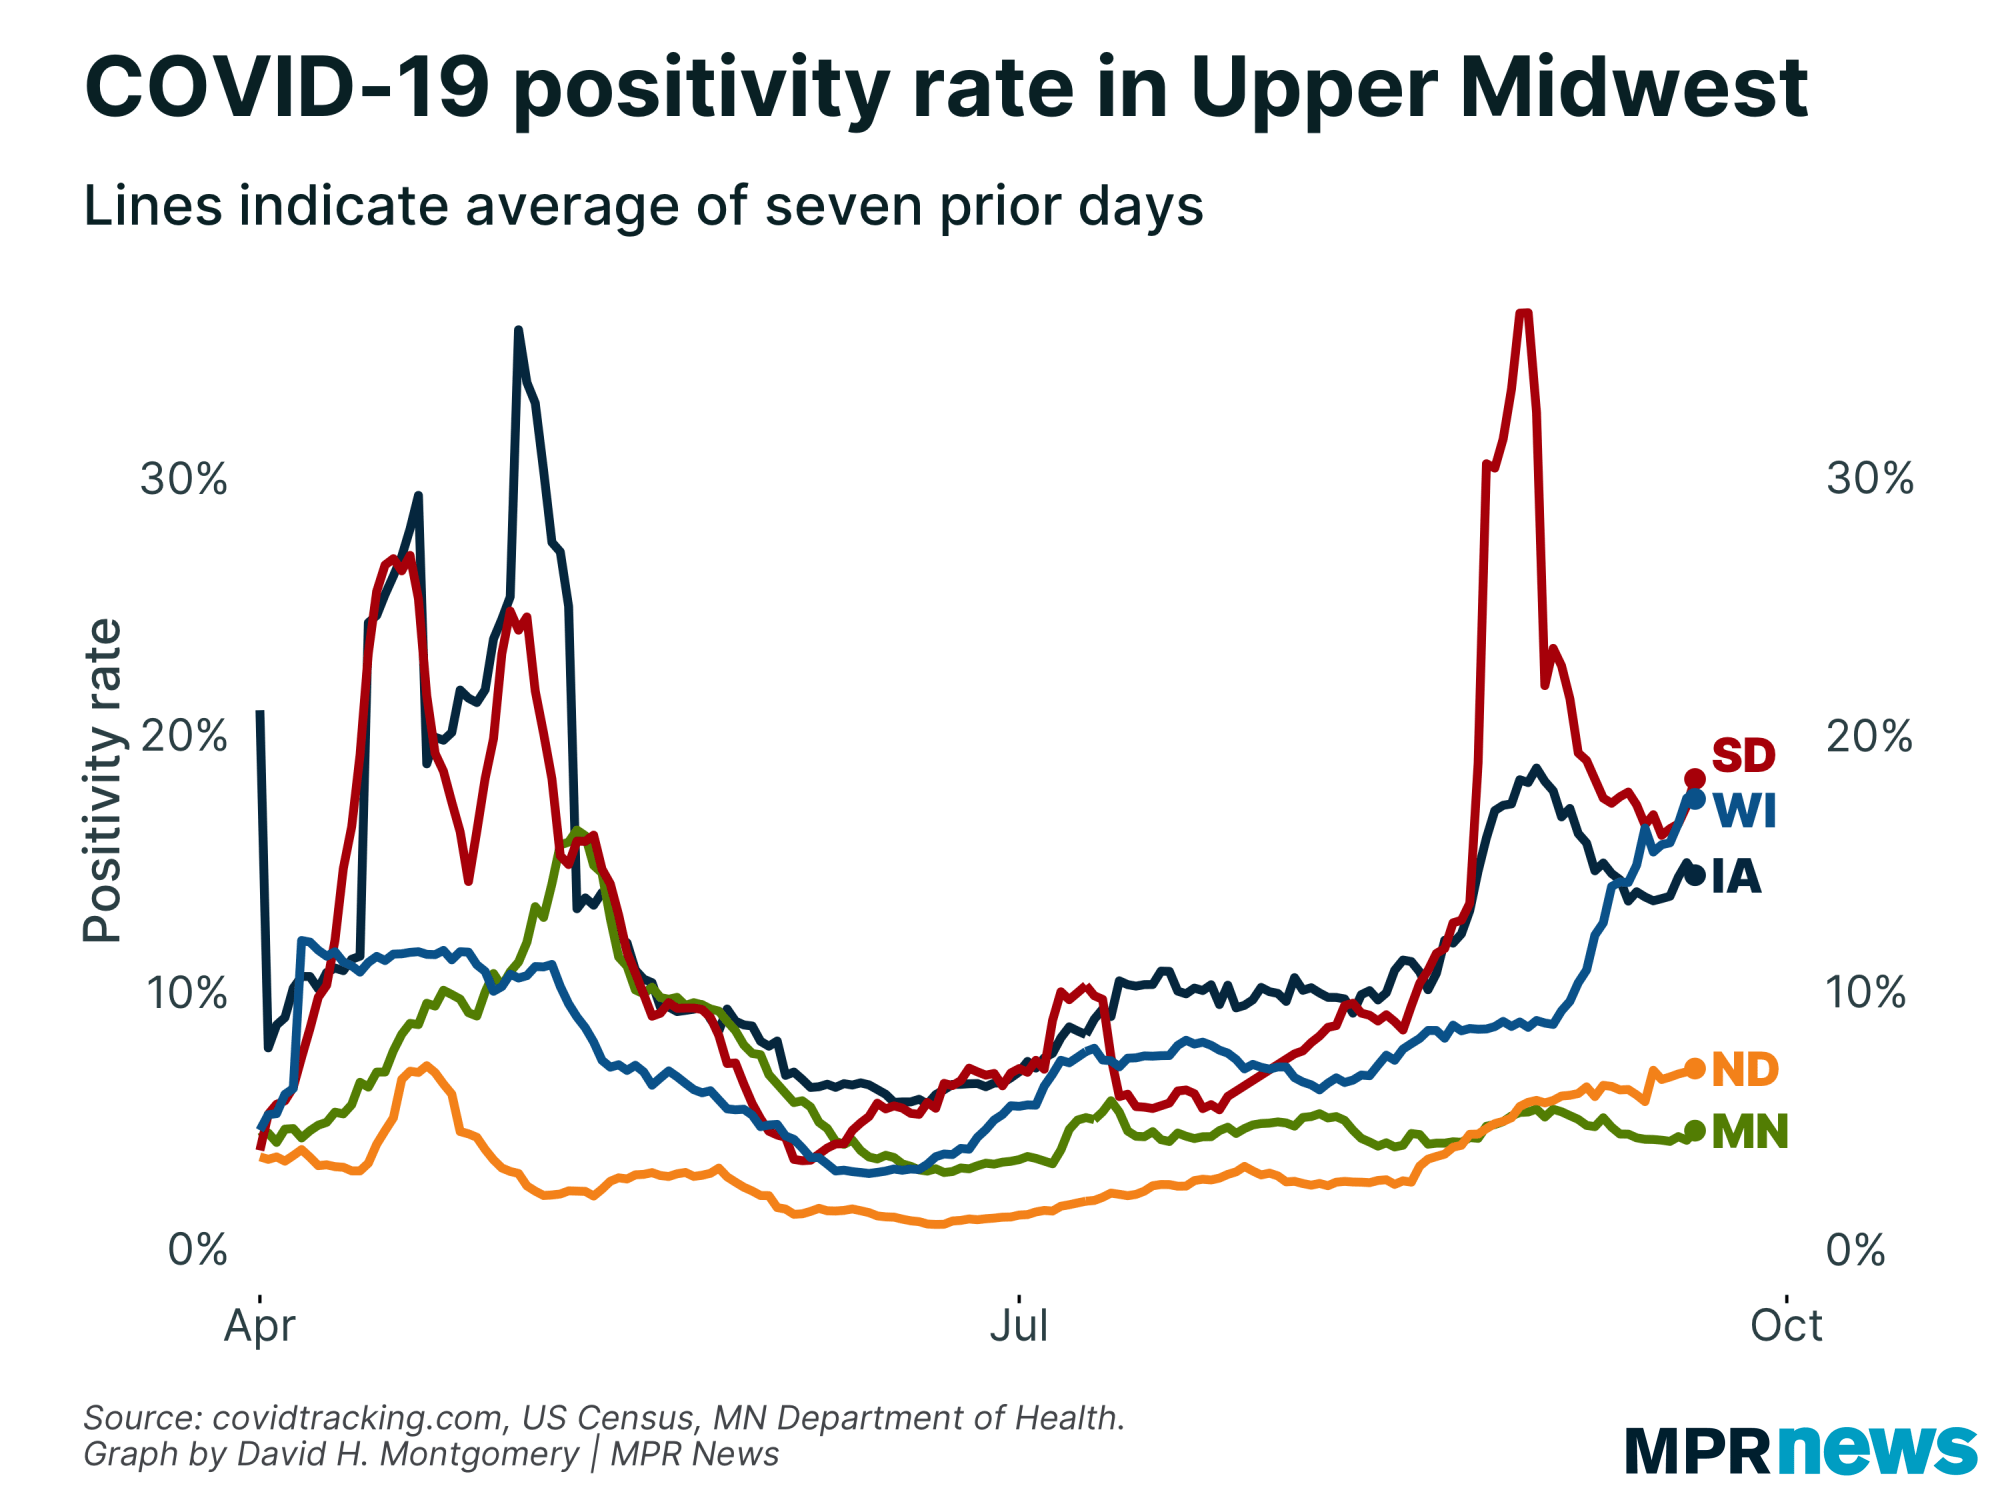 COVID-19 positivity rate in the Upper Midwest